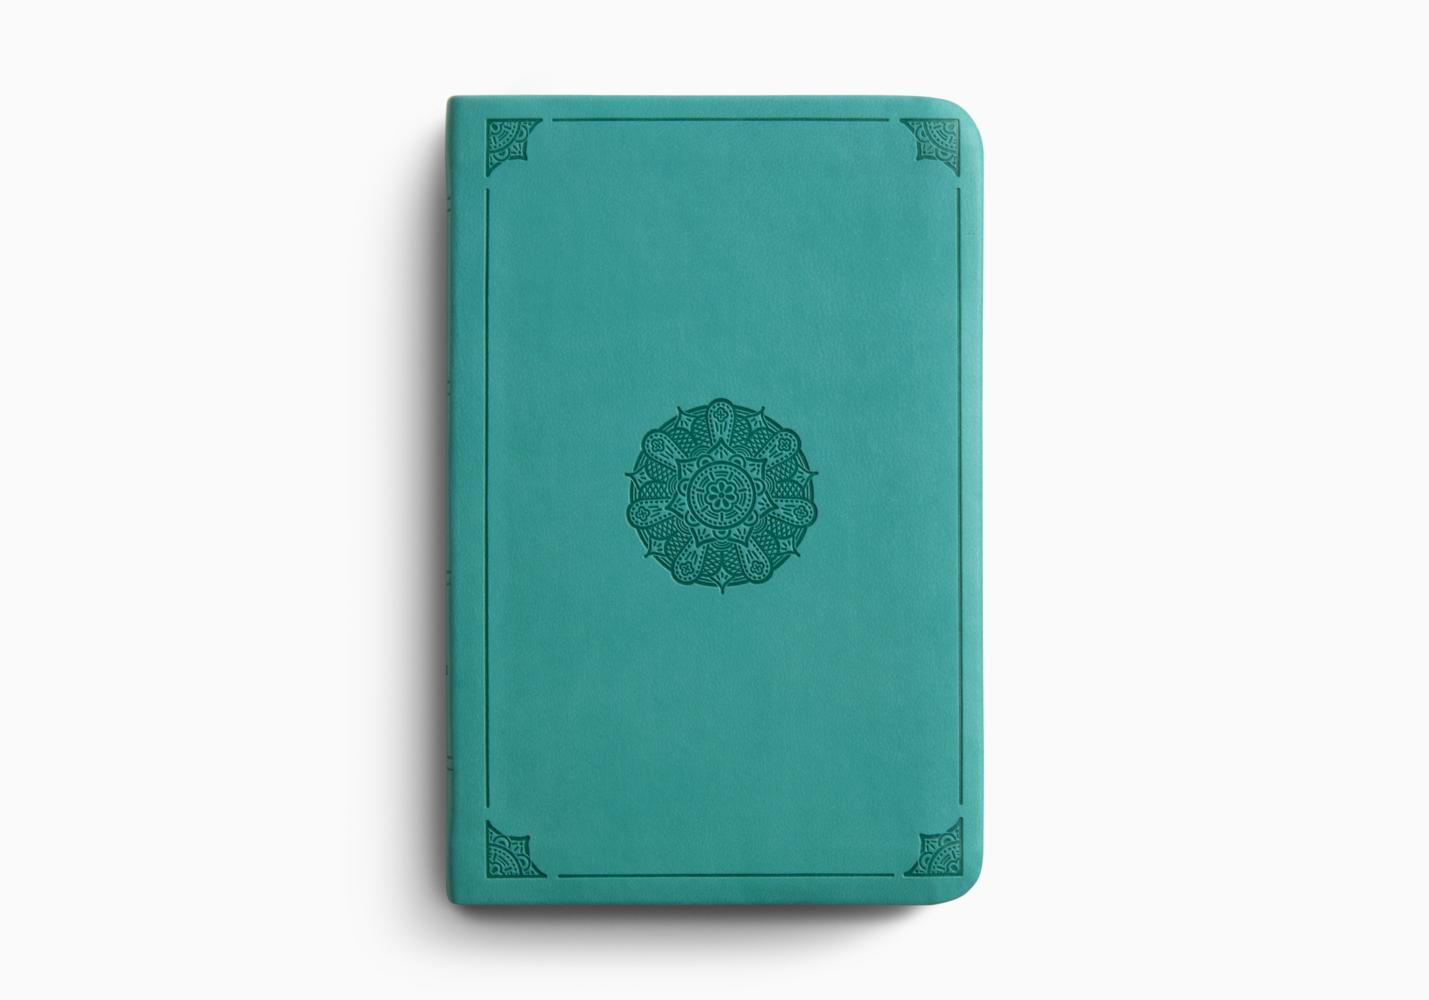 ESV Value Compact Bible